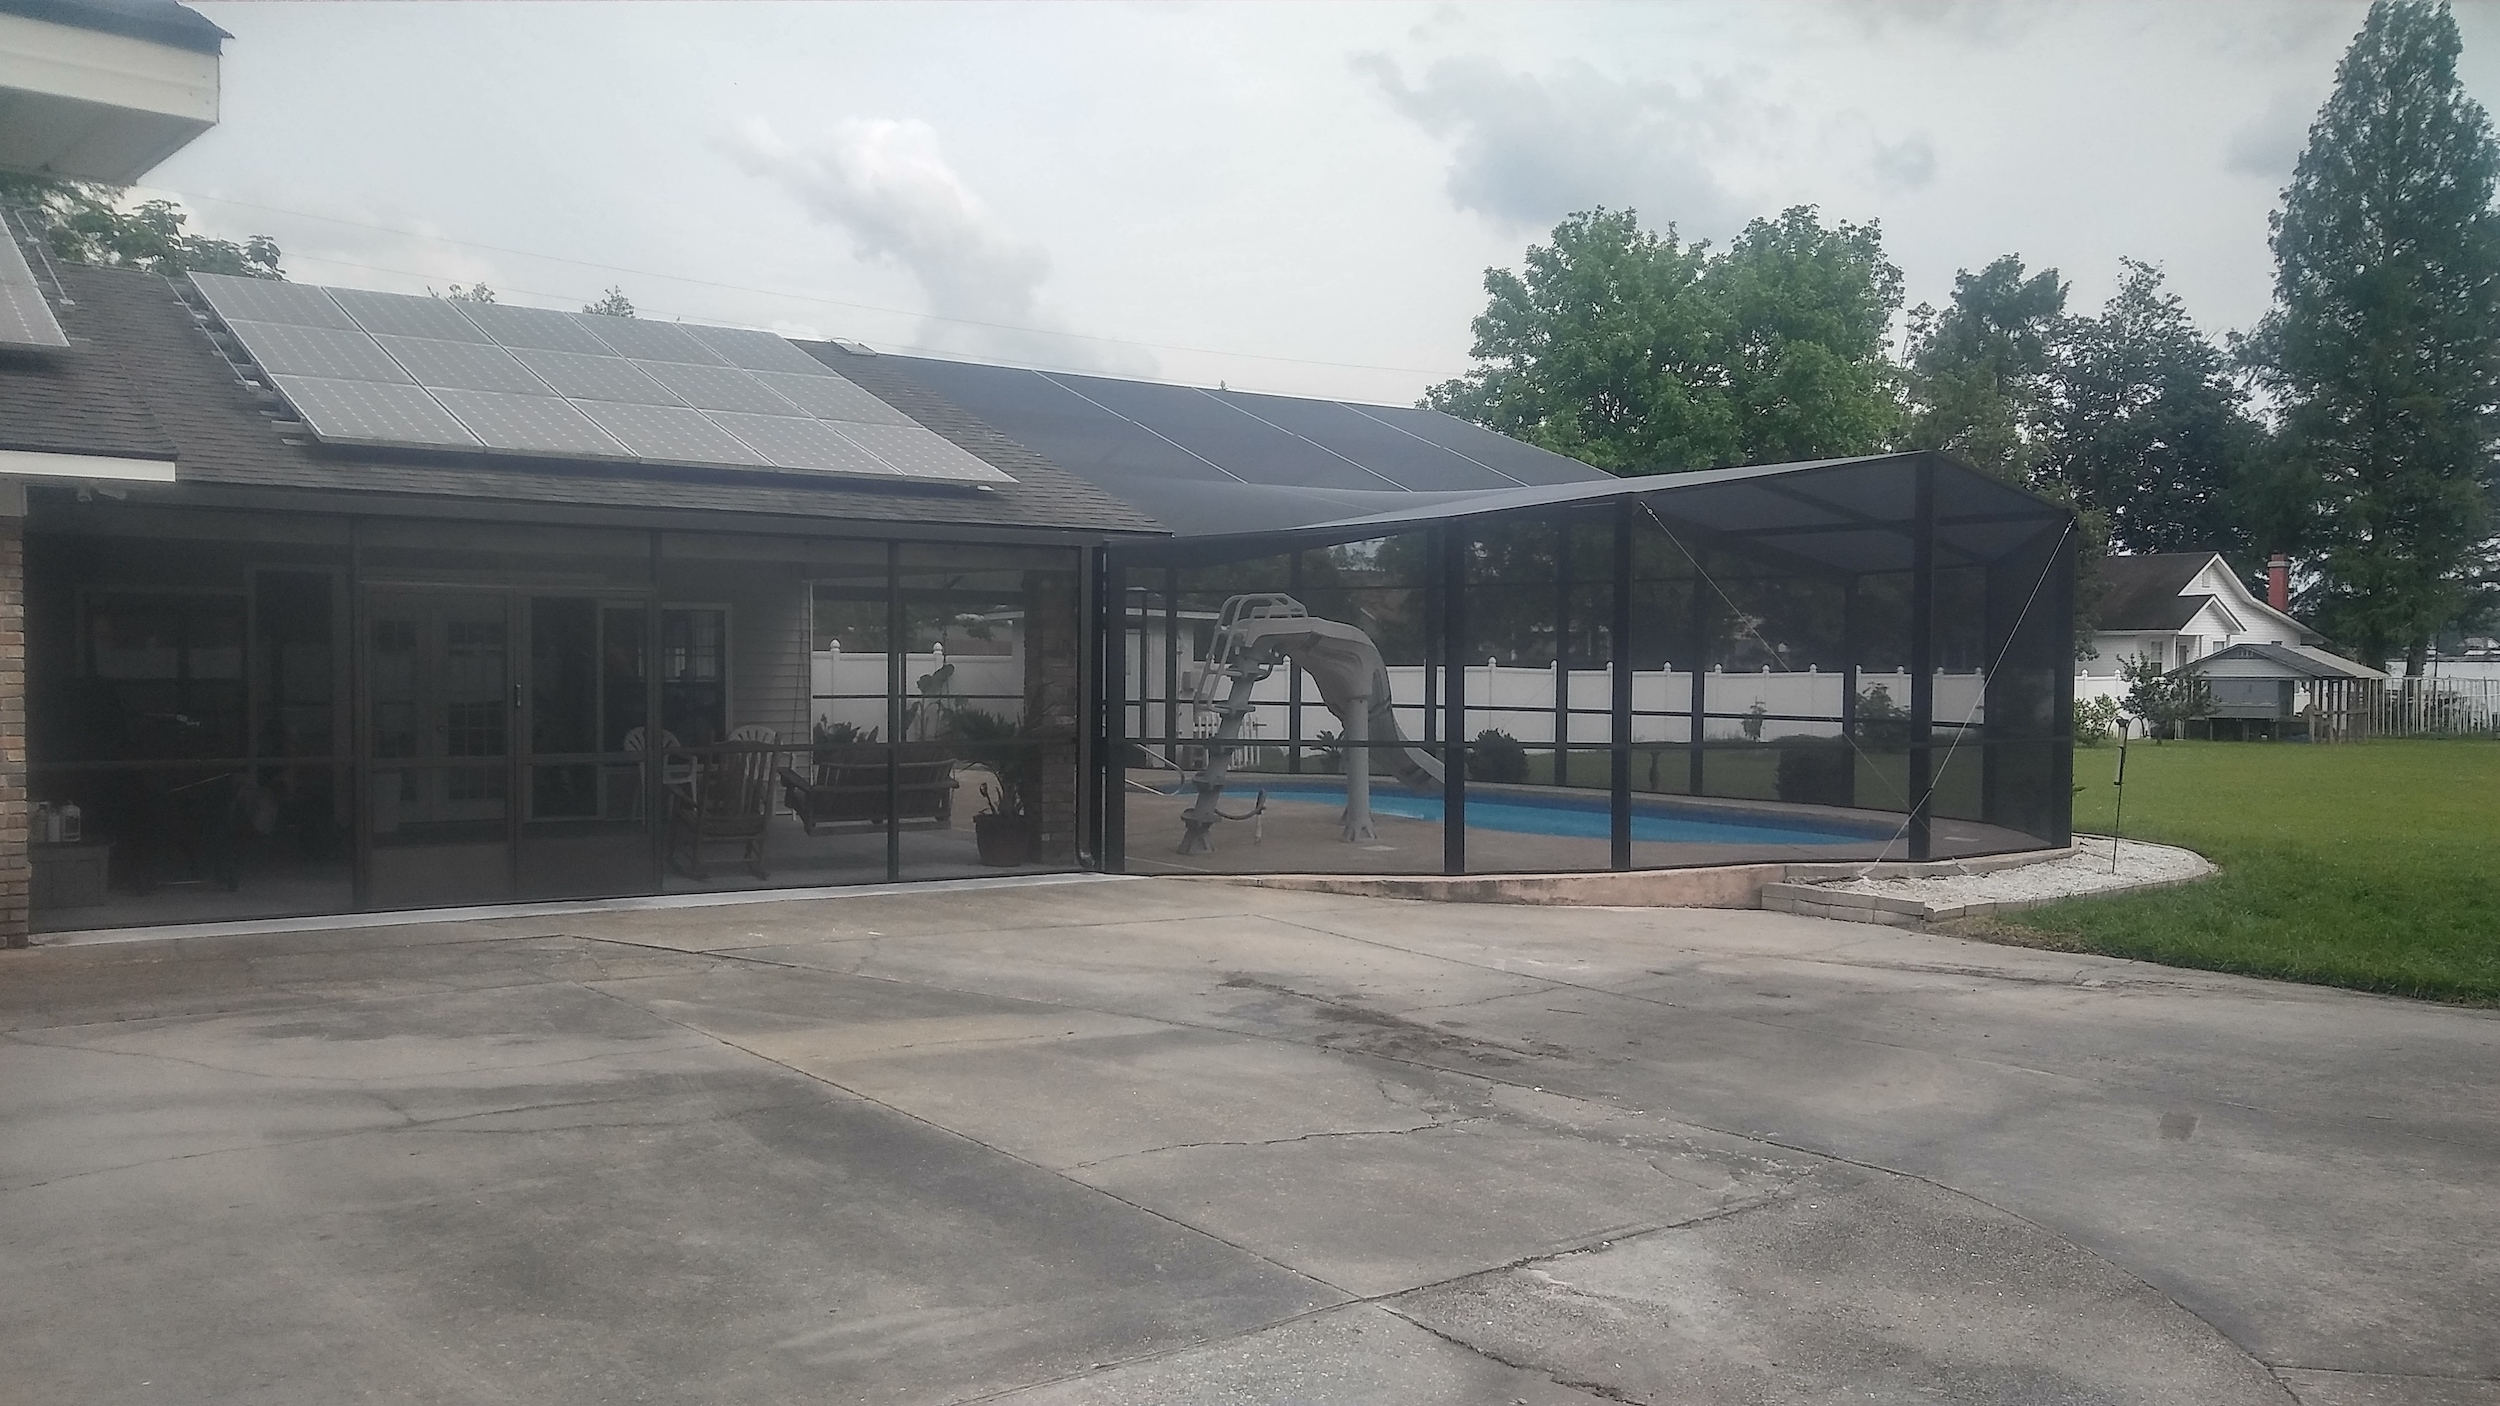 Affordable pool enclosure creating a covered outdoor living space for added pool safety and cleanliness.